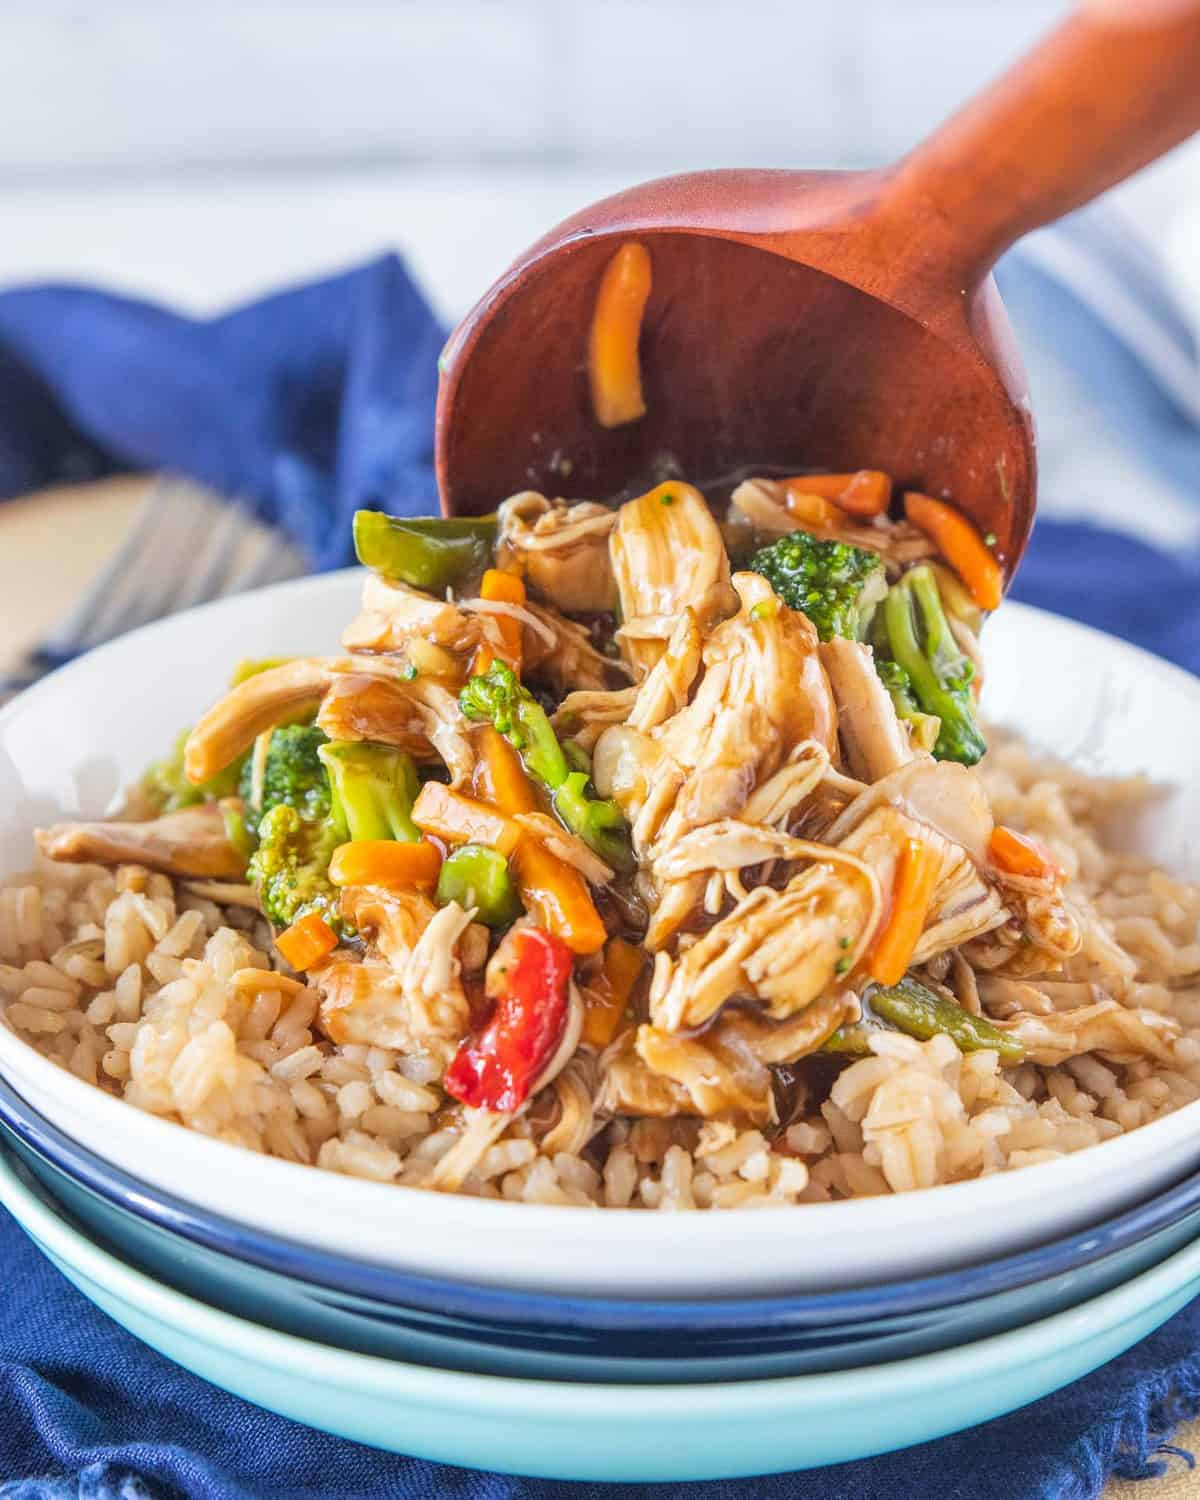 Chicken stir fry scooped over a bed of rice in a bowl.